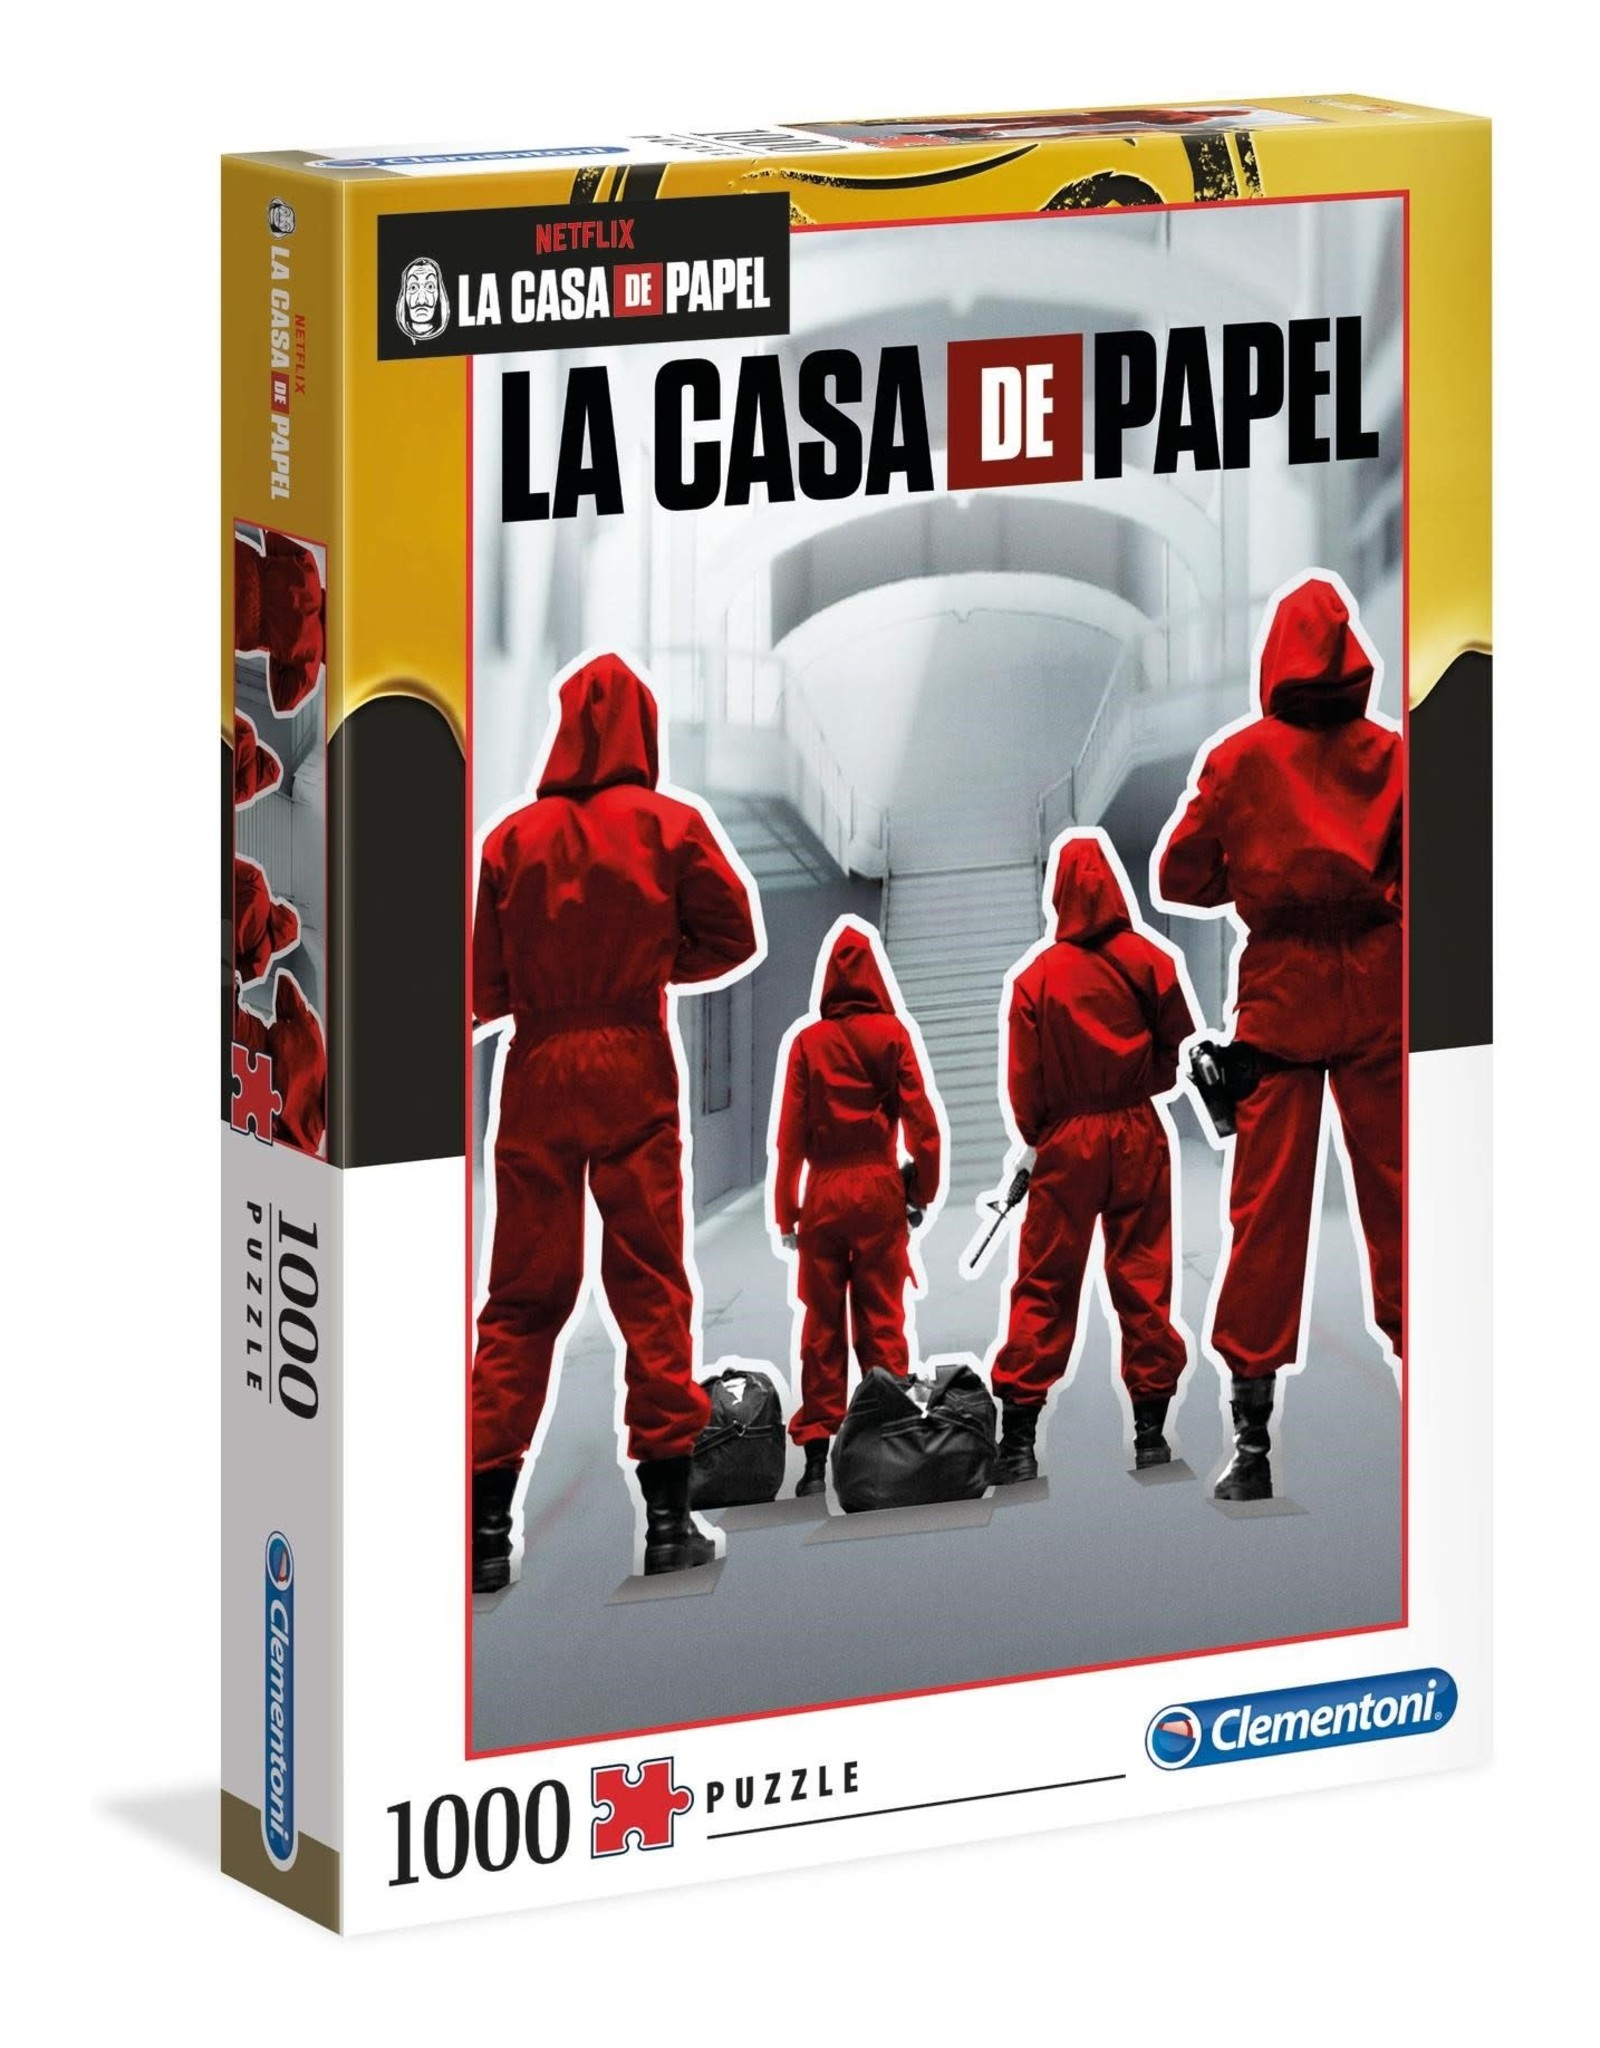 Clementoni CASA DE PAPEL Puzzle 1000P -  Backs